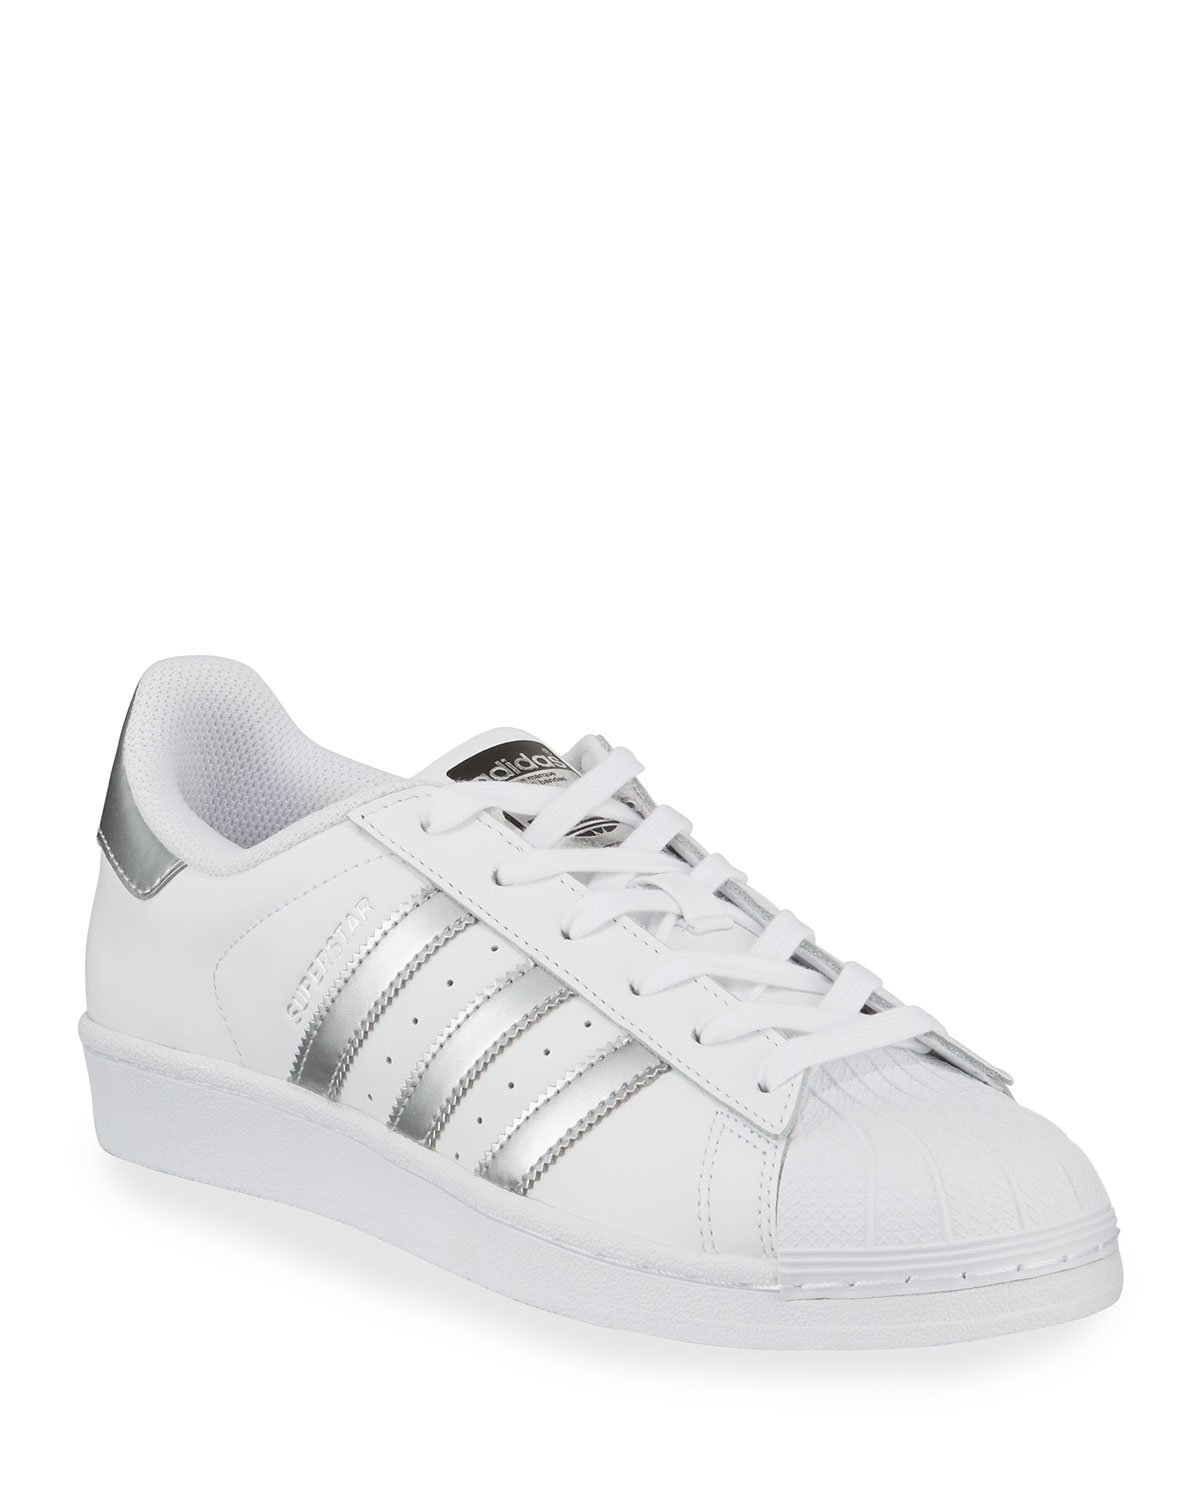 f1f7f733d5d Adidas Superstar Original Fashion Sneakers